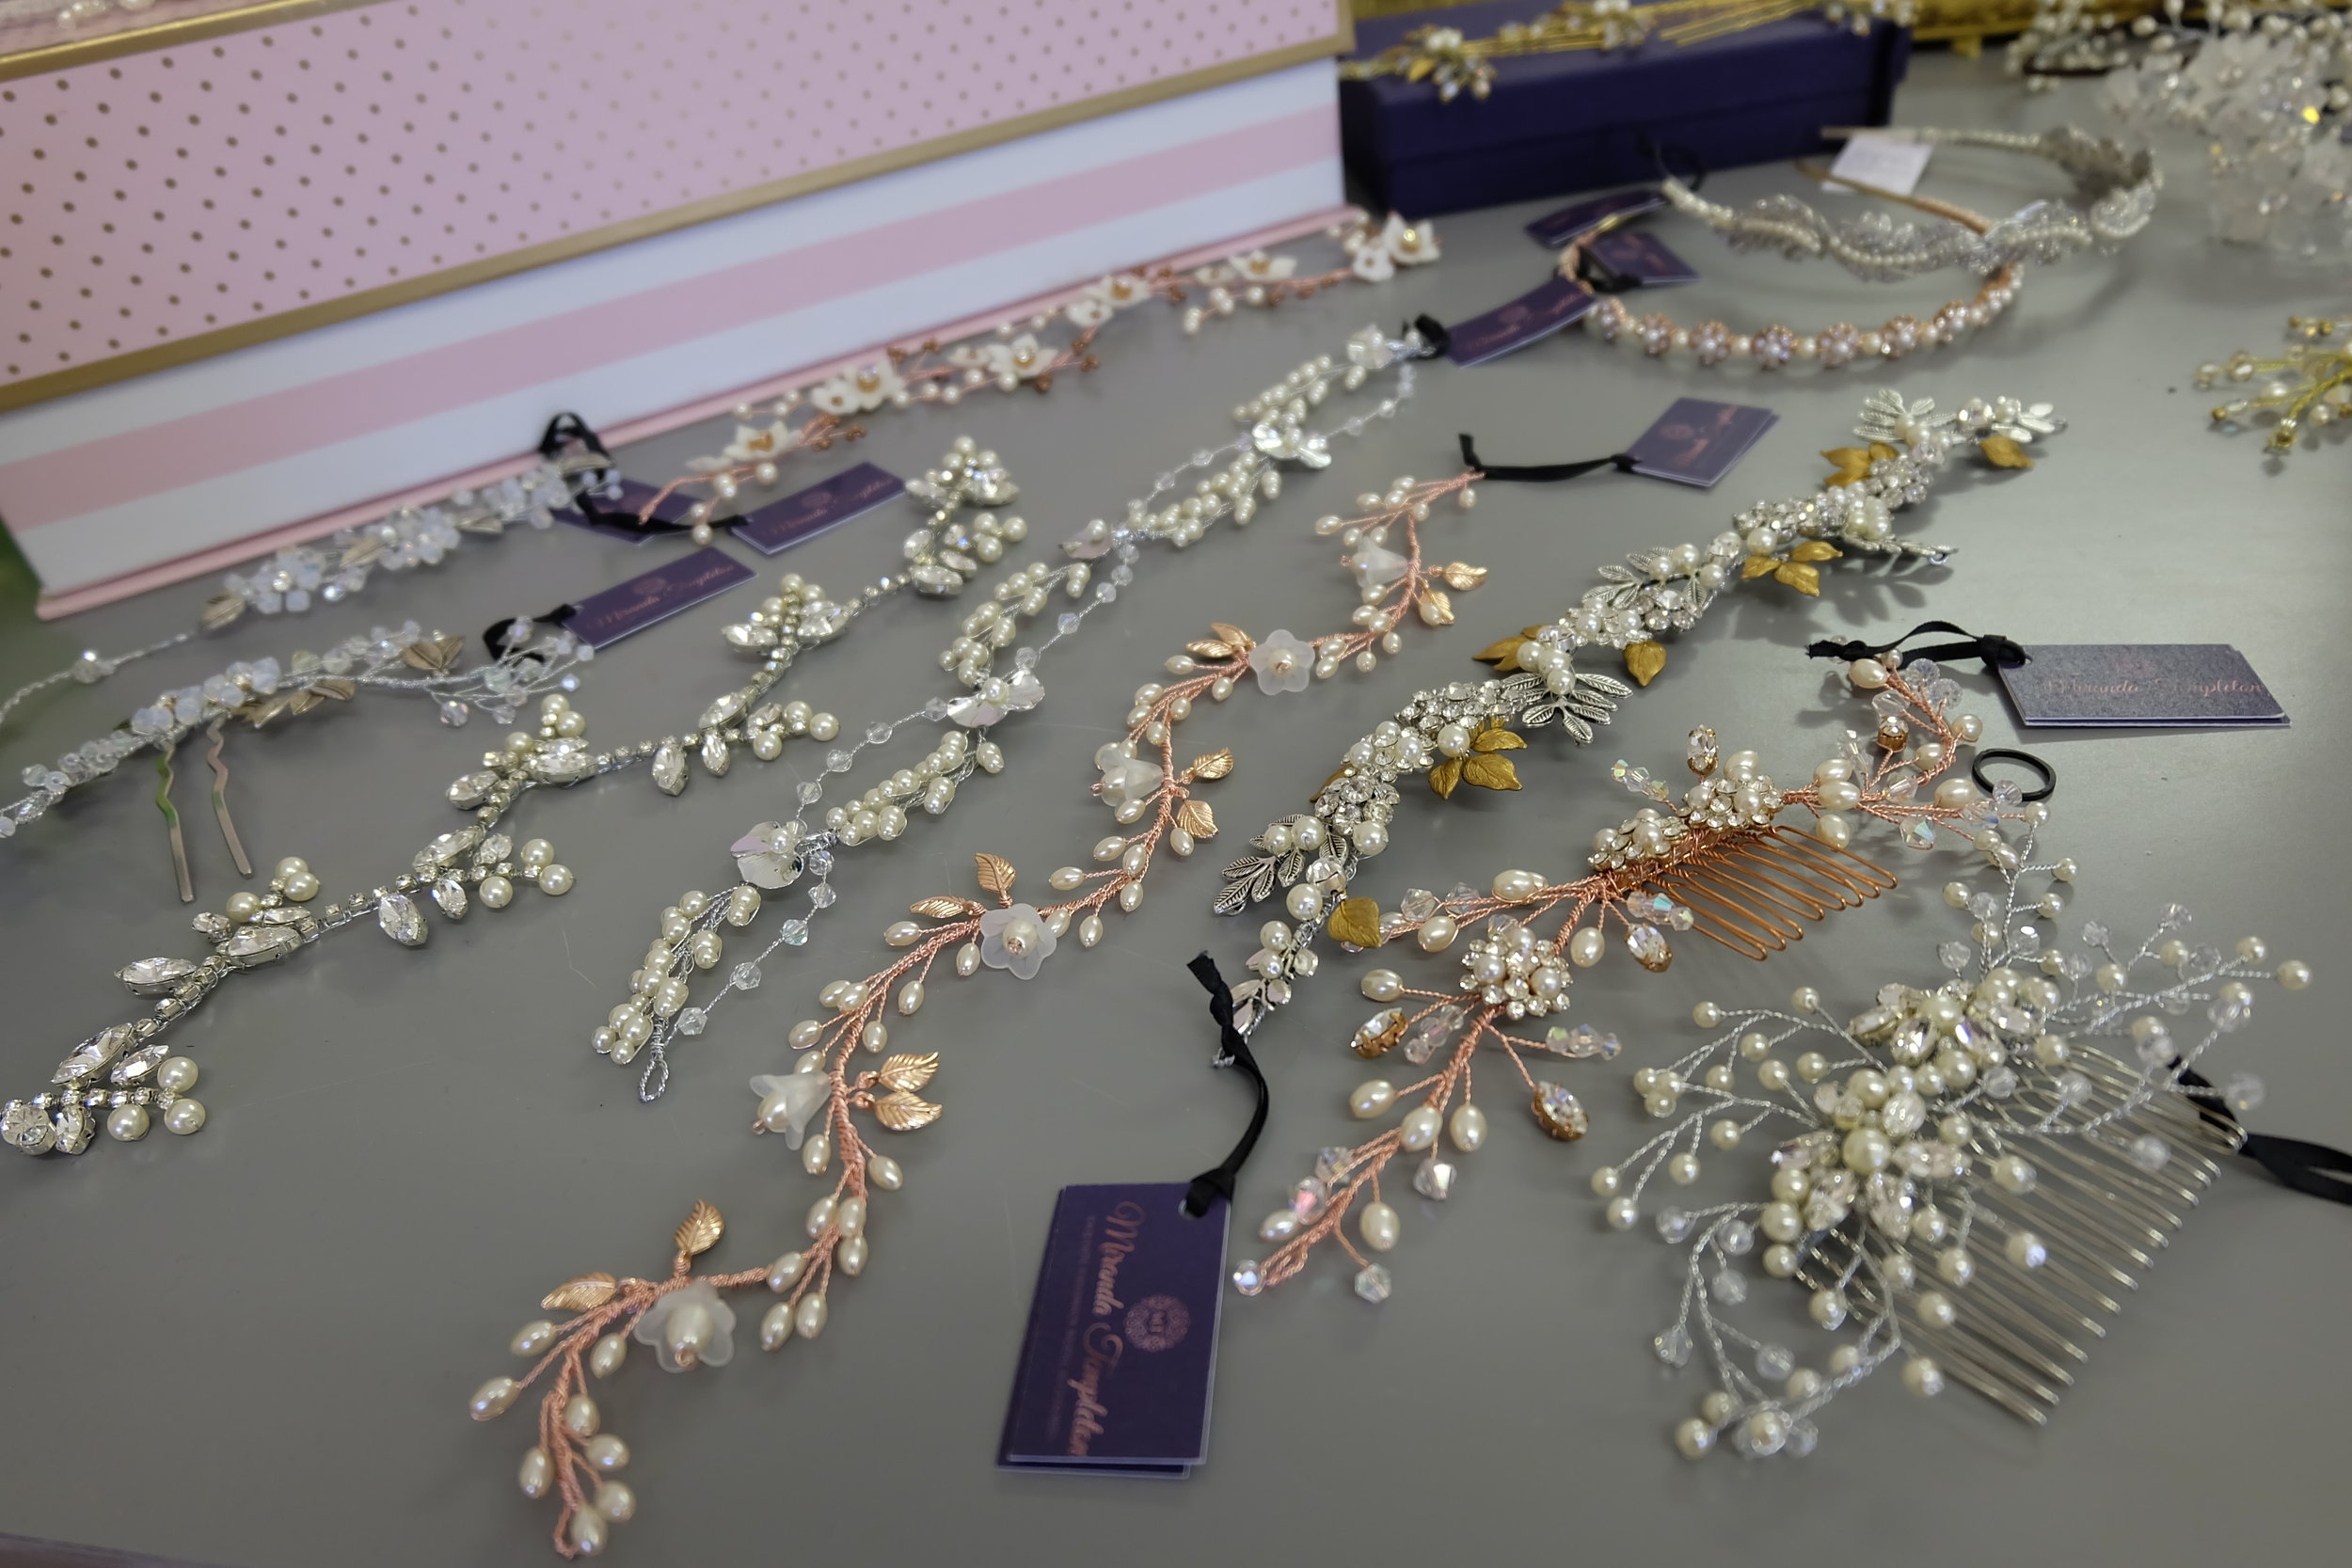 Some of the beautifully hand crafted pieces.